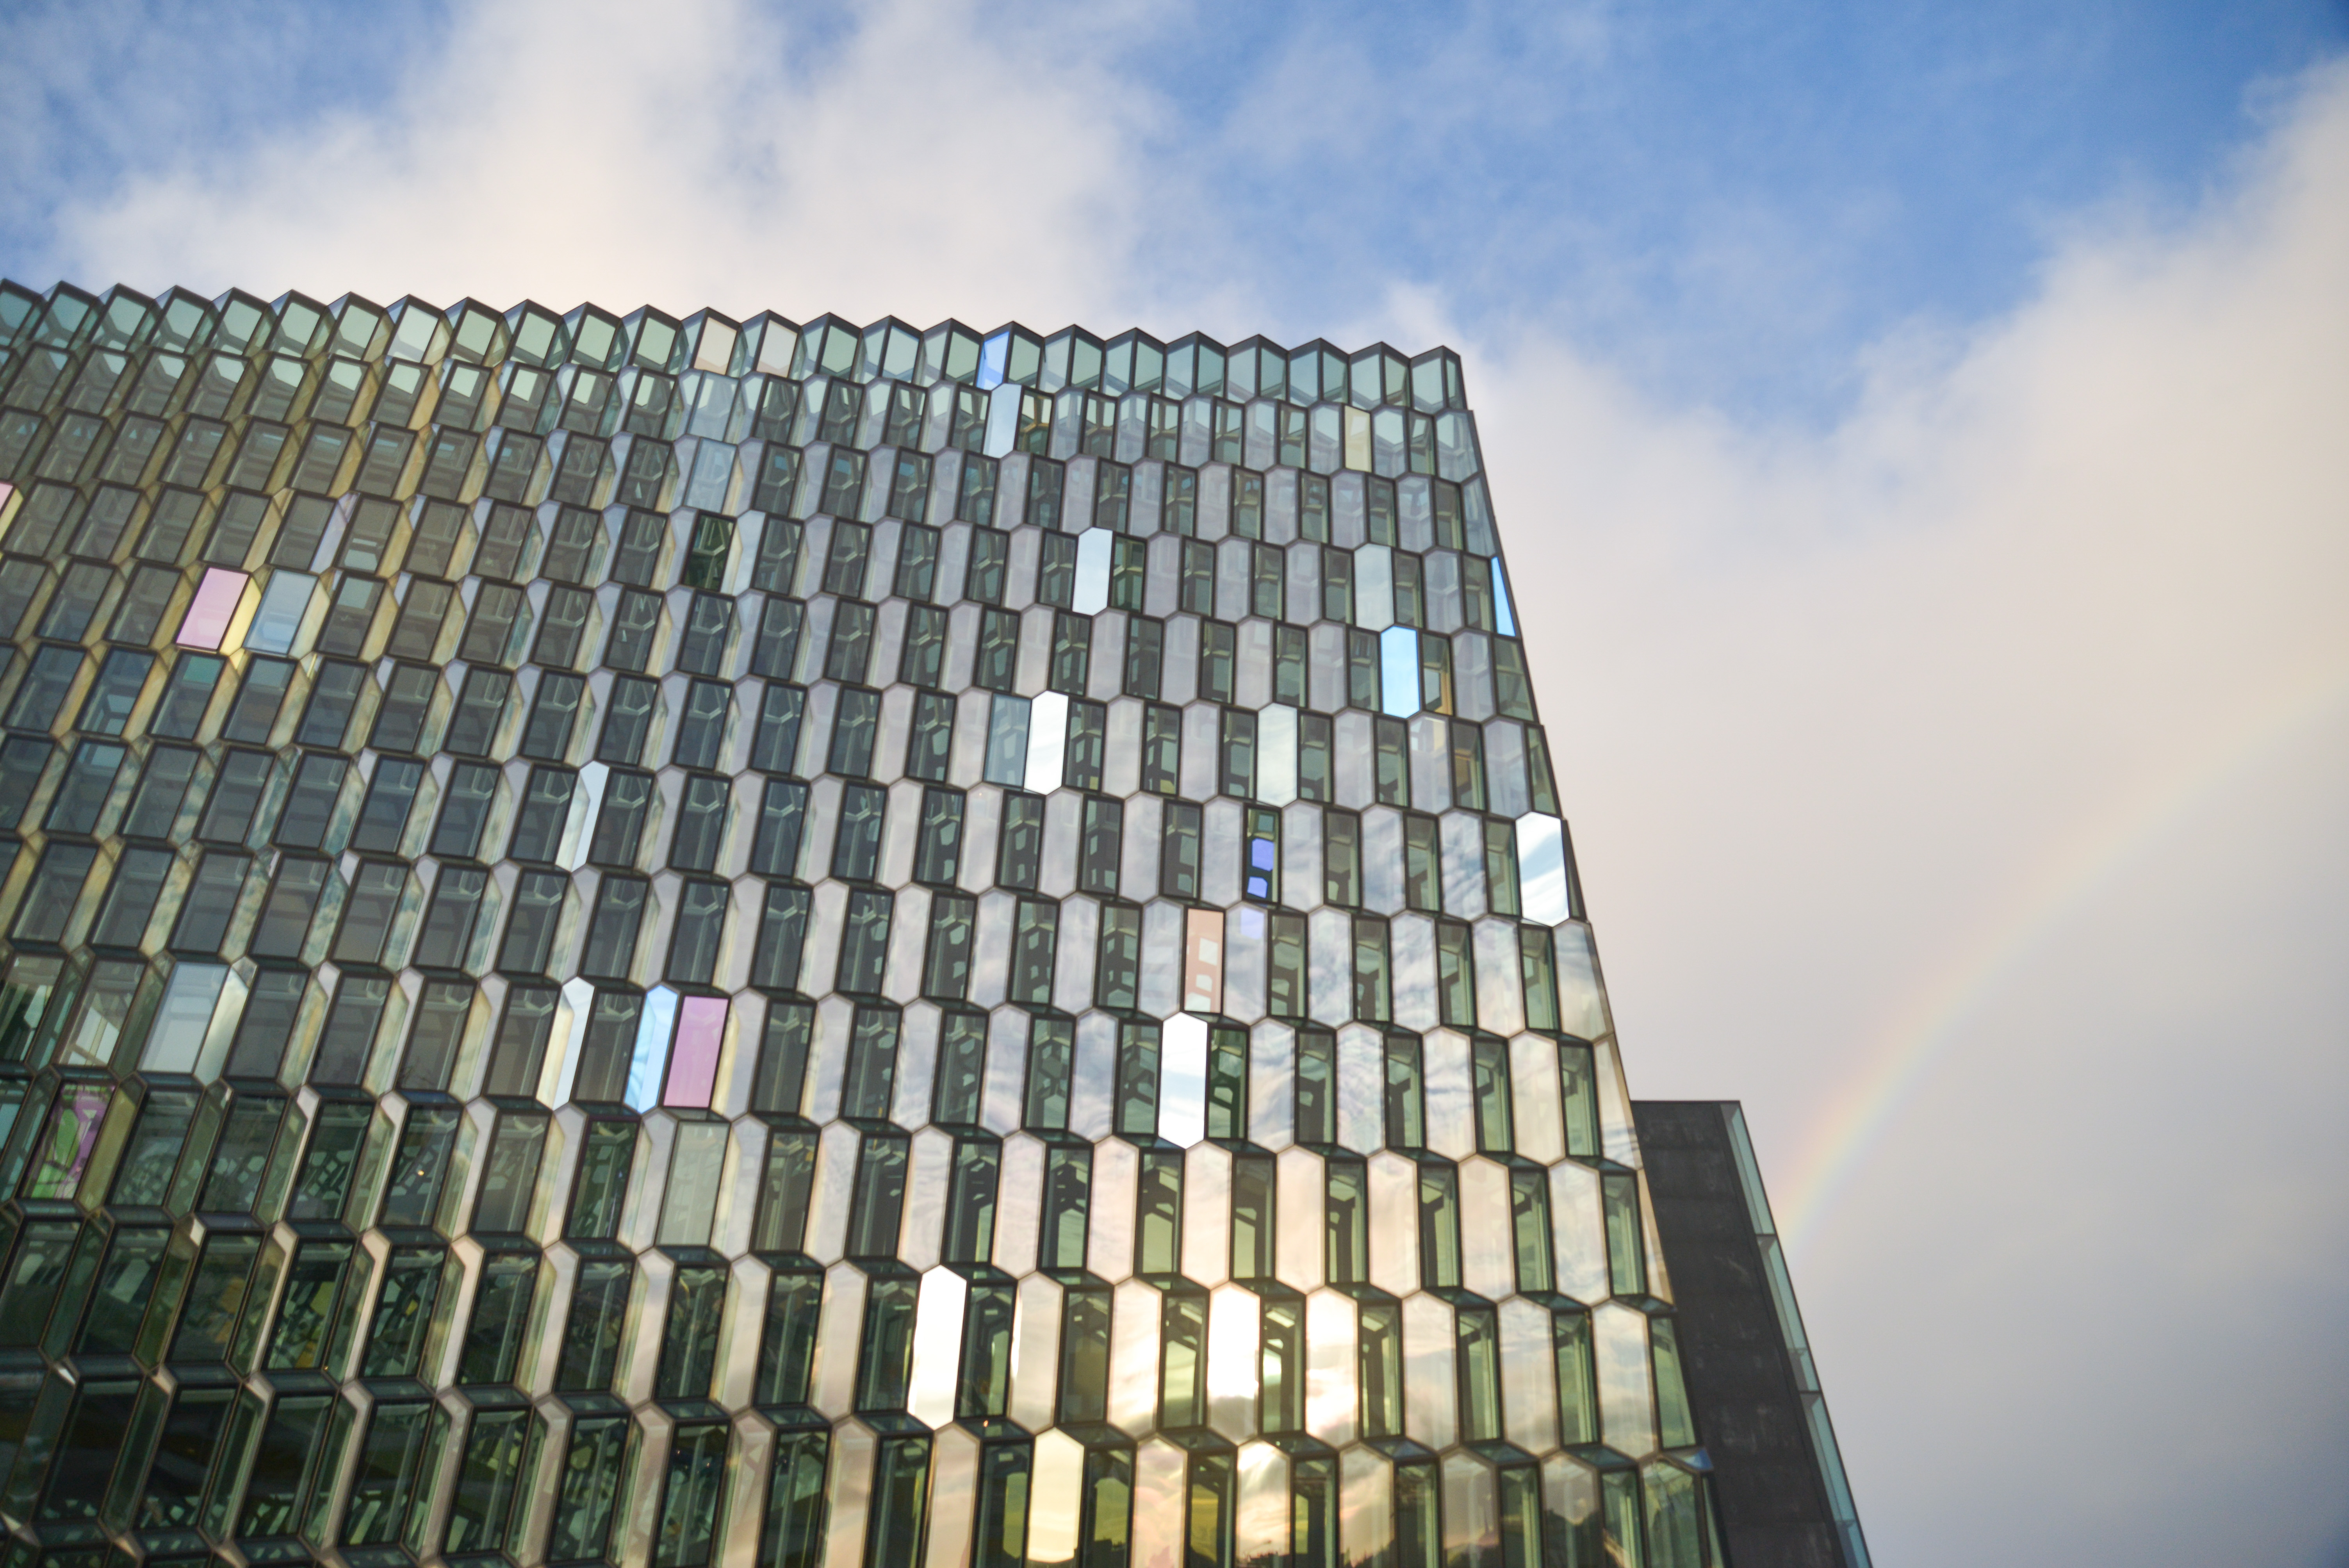 Rainbow over Harpa